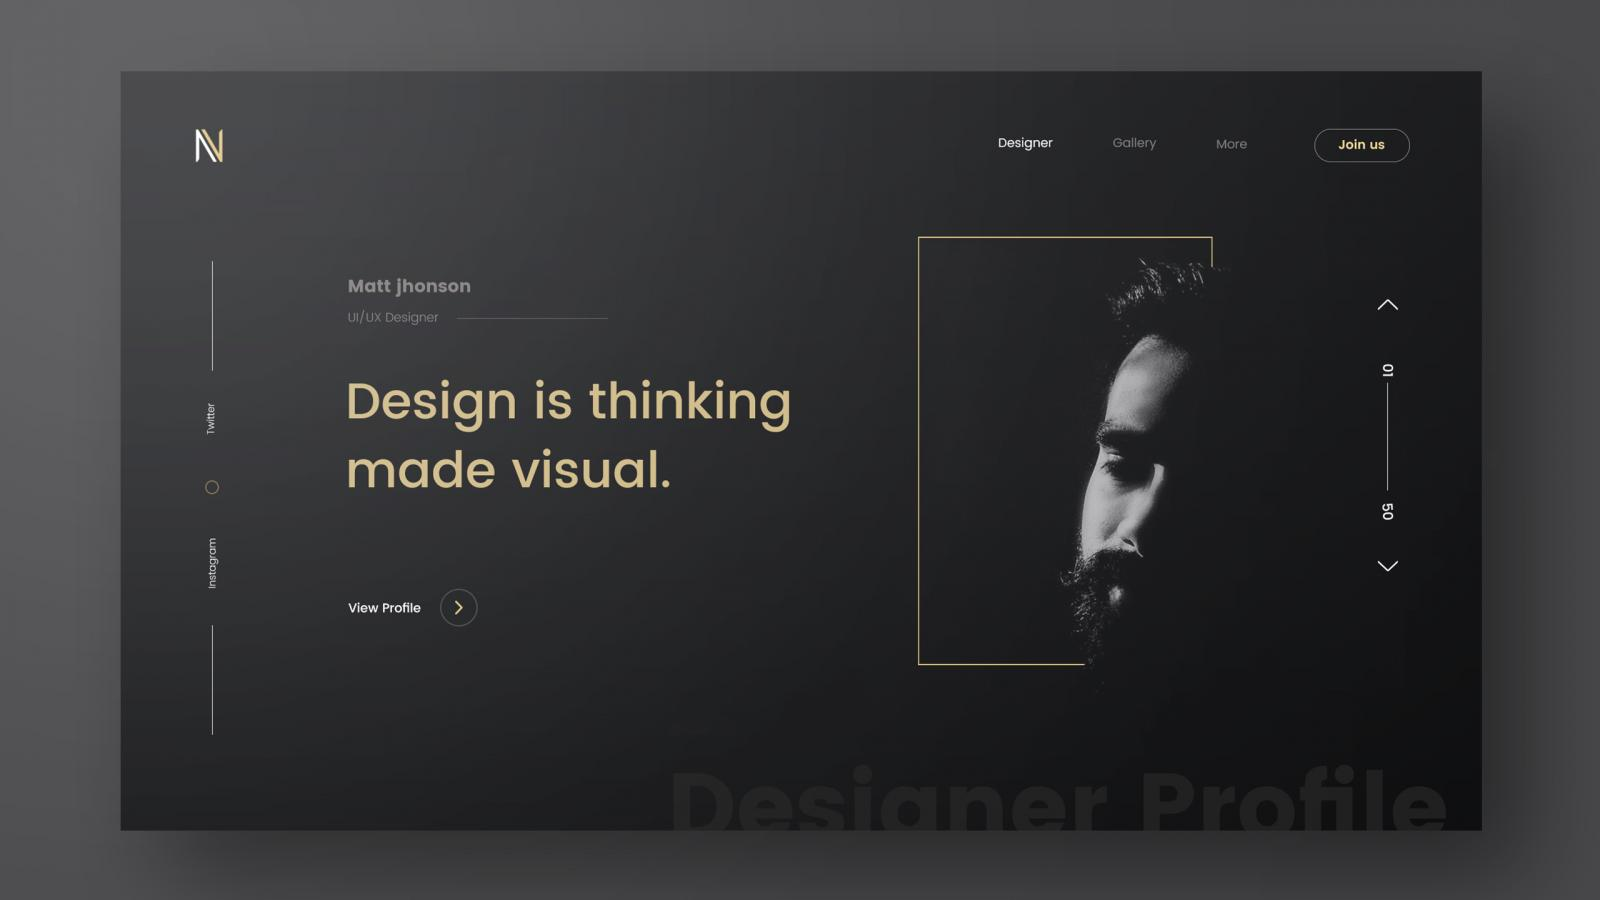 Web Design Inspiration for the Week